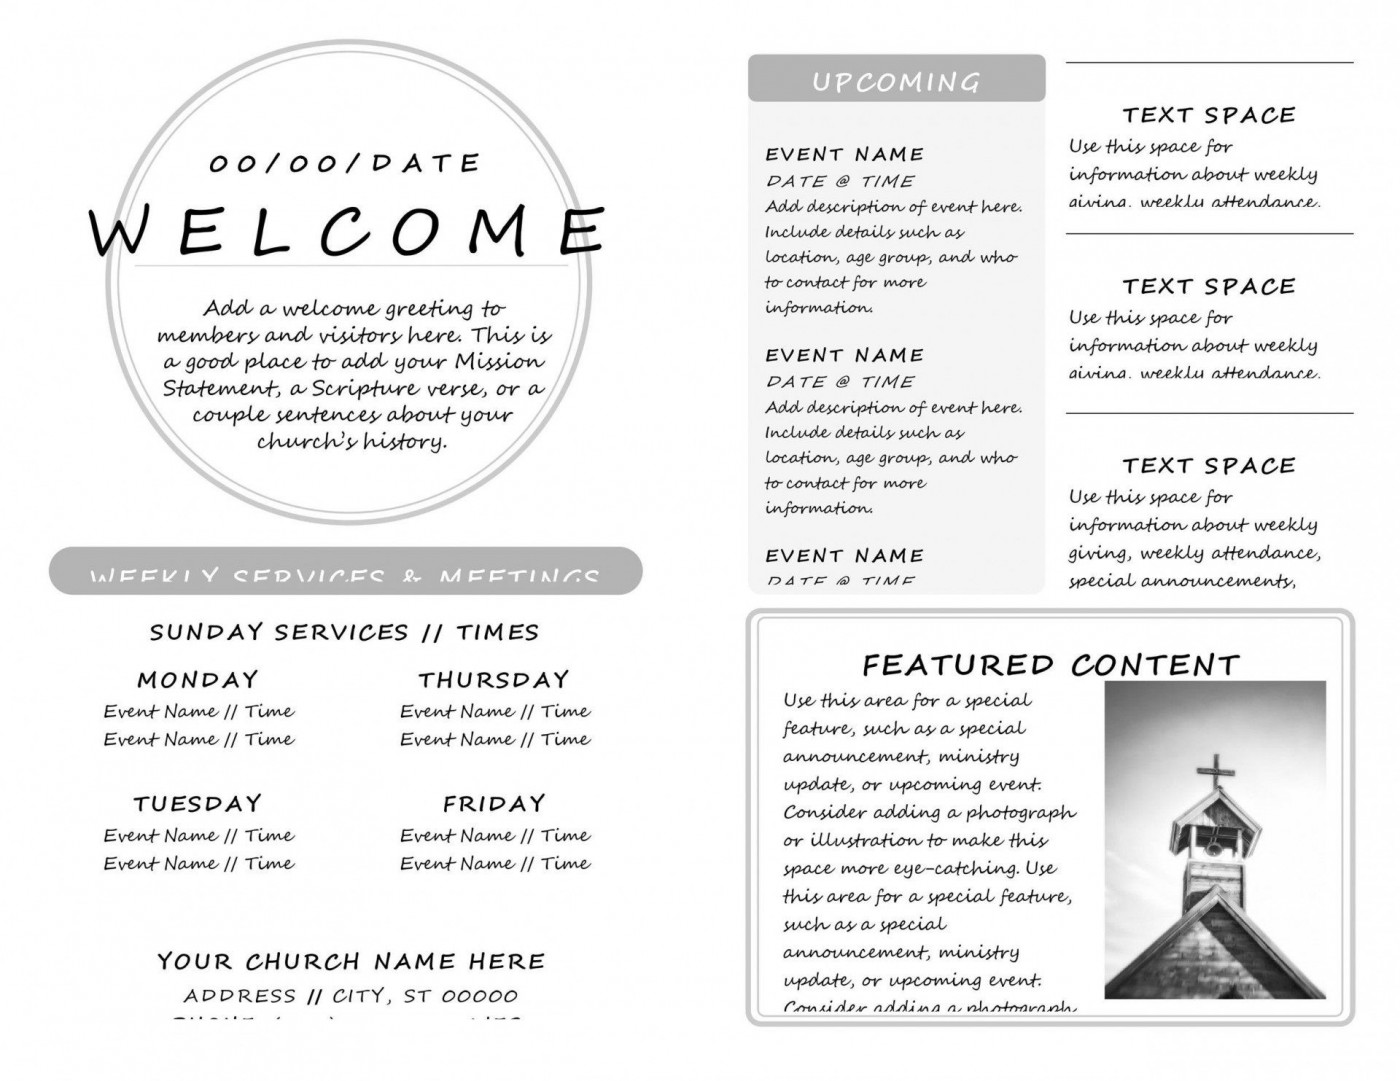 007 Awful Free Church Program Template Doc Highest Quality 1400